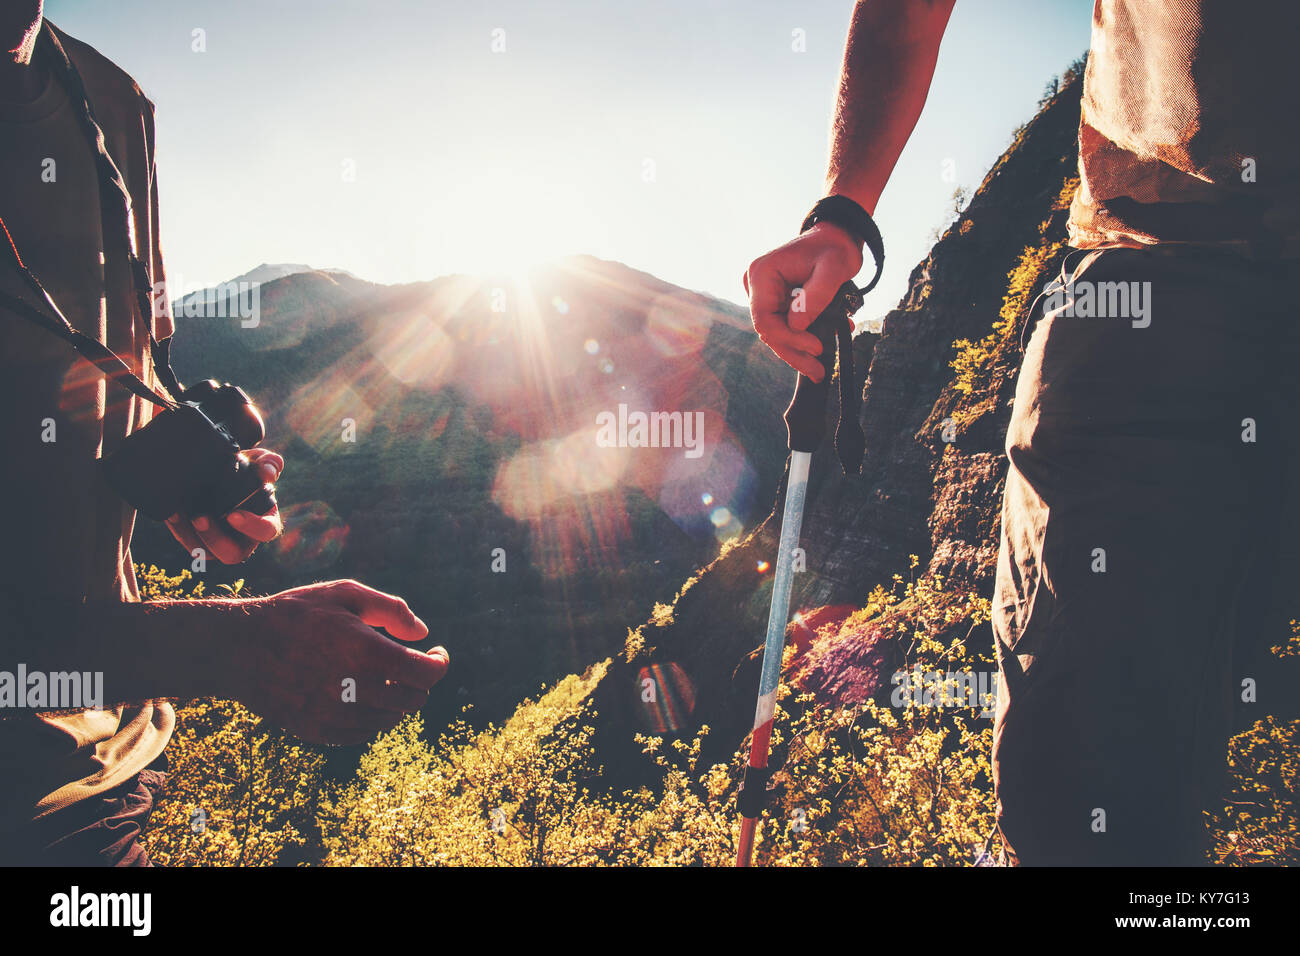 Hikers tourists traveling at sunset mountains outdoor Travel Lifestyle concept adventure active vacations hiking - Stock Image